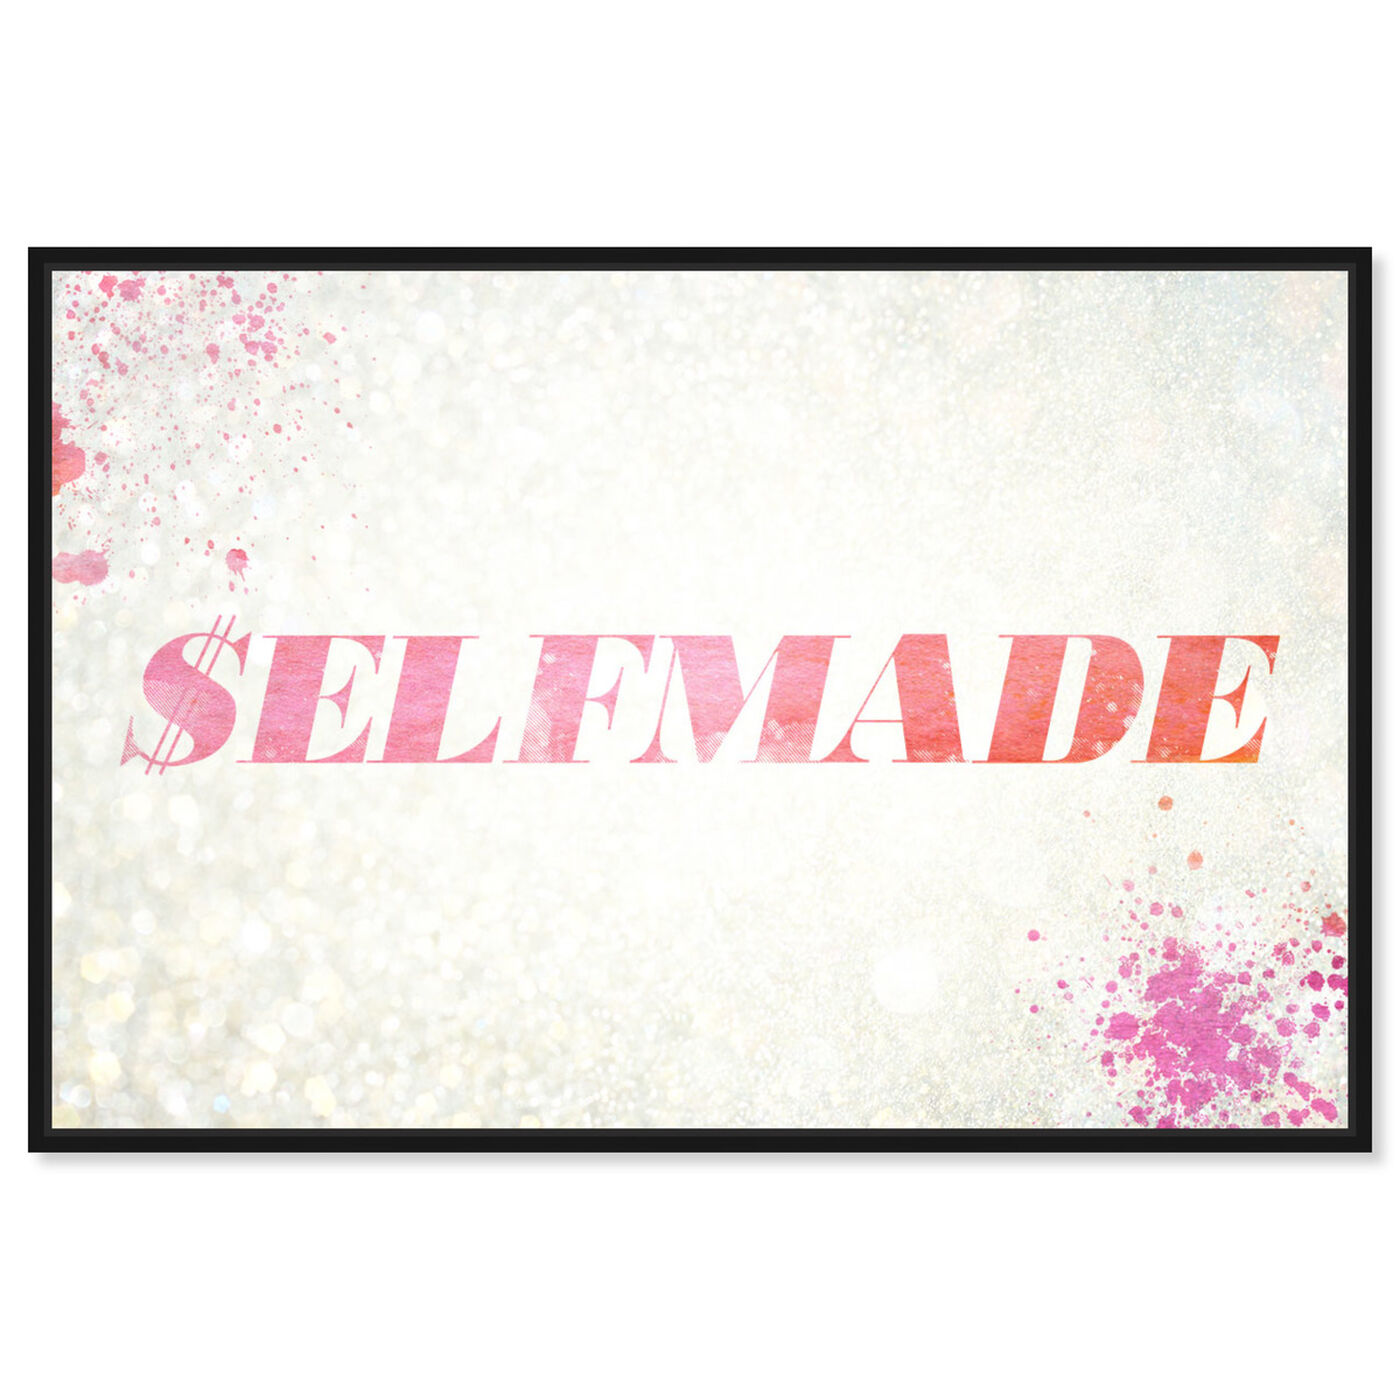 Front view of $elfmade Coral featuring typography and quotes and quotes and sayings art.